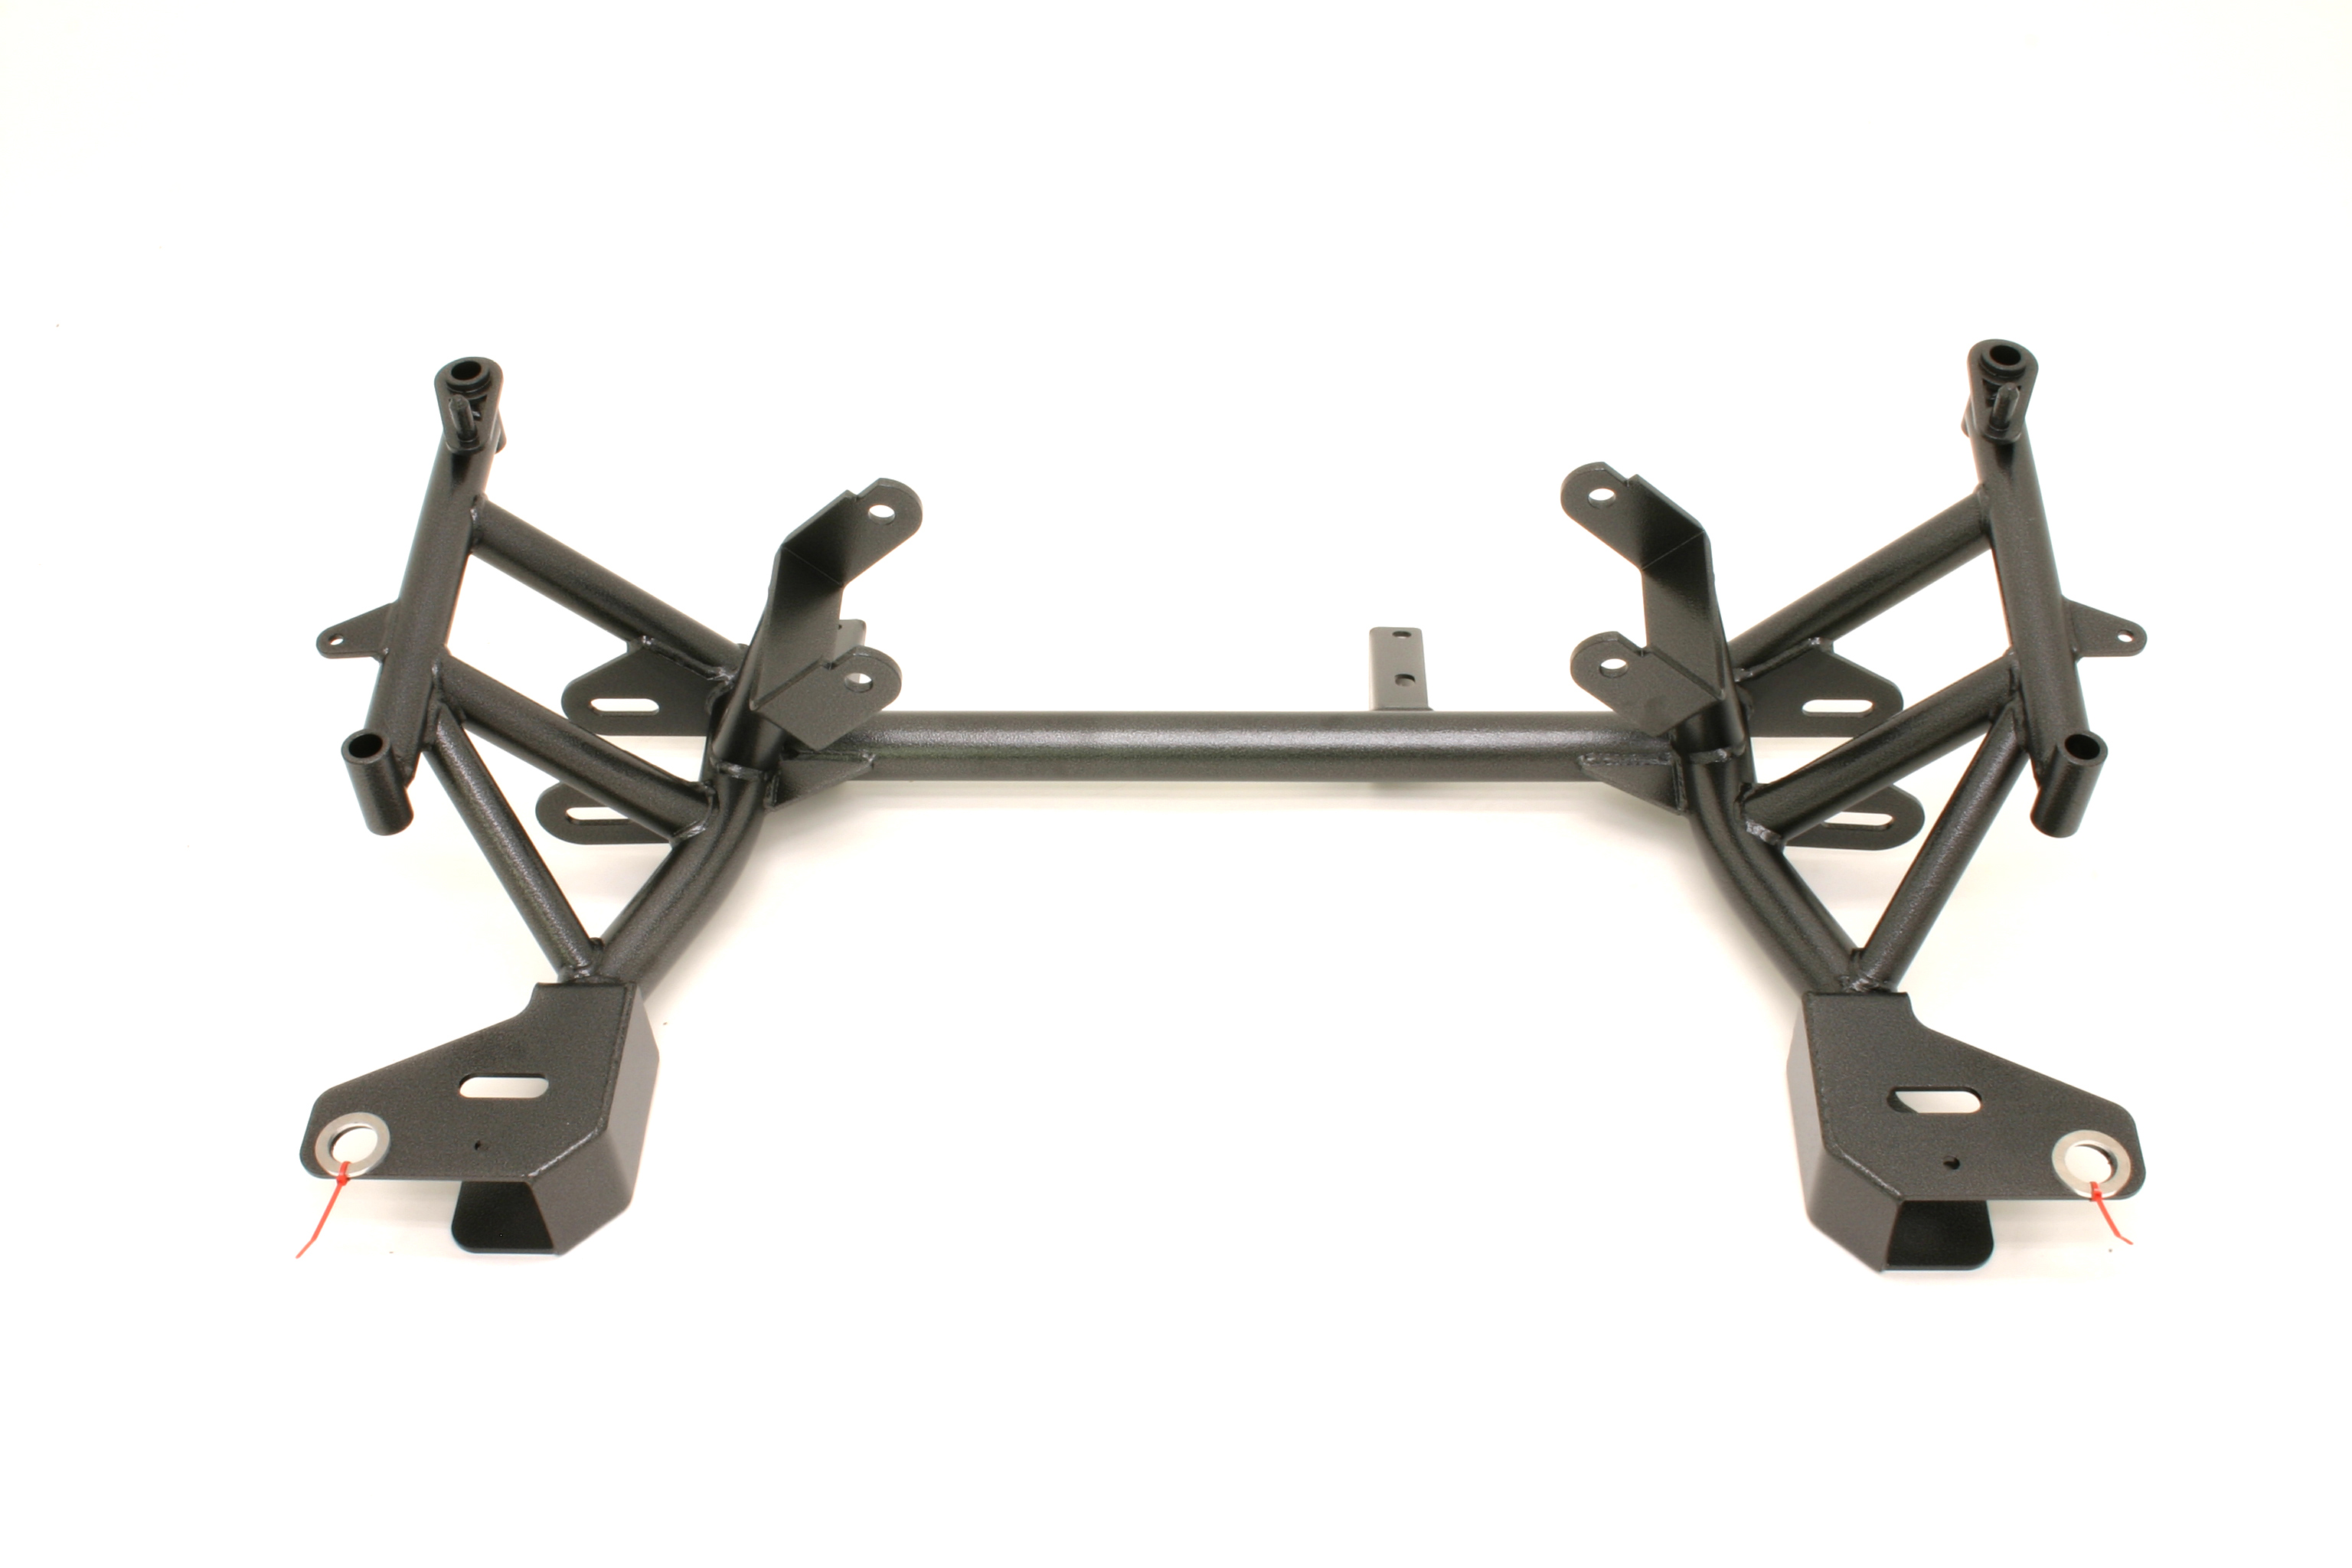 98-02 LS1 Fbody BMR Fabrication Tubular K-Member w/ LS1 Motor Mounts for Pinto Rack Mounts